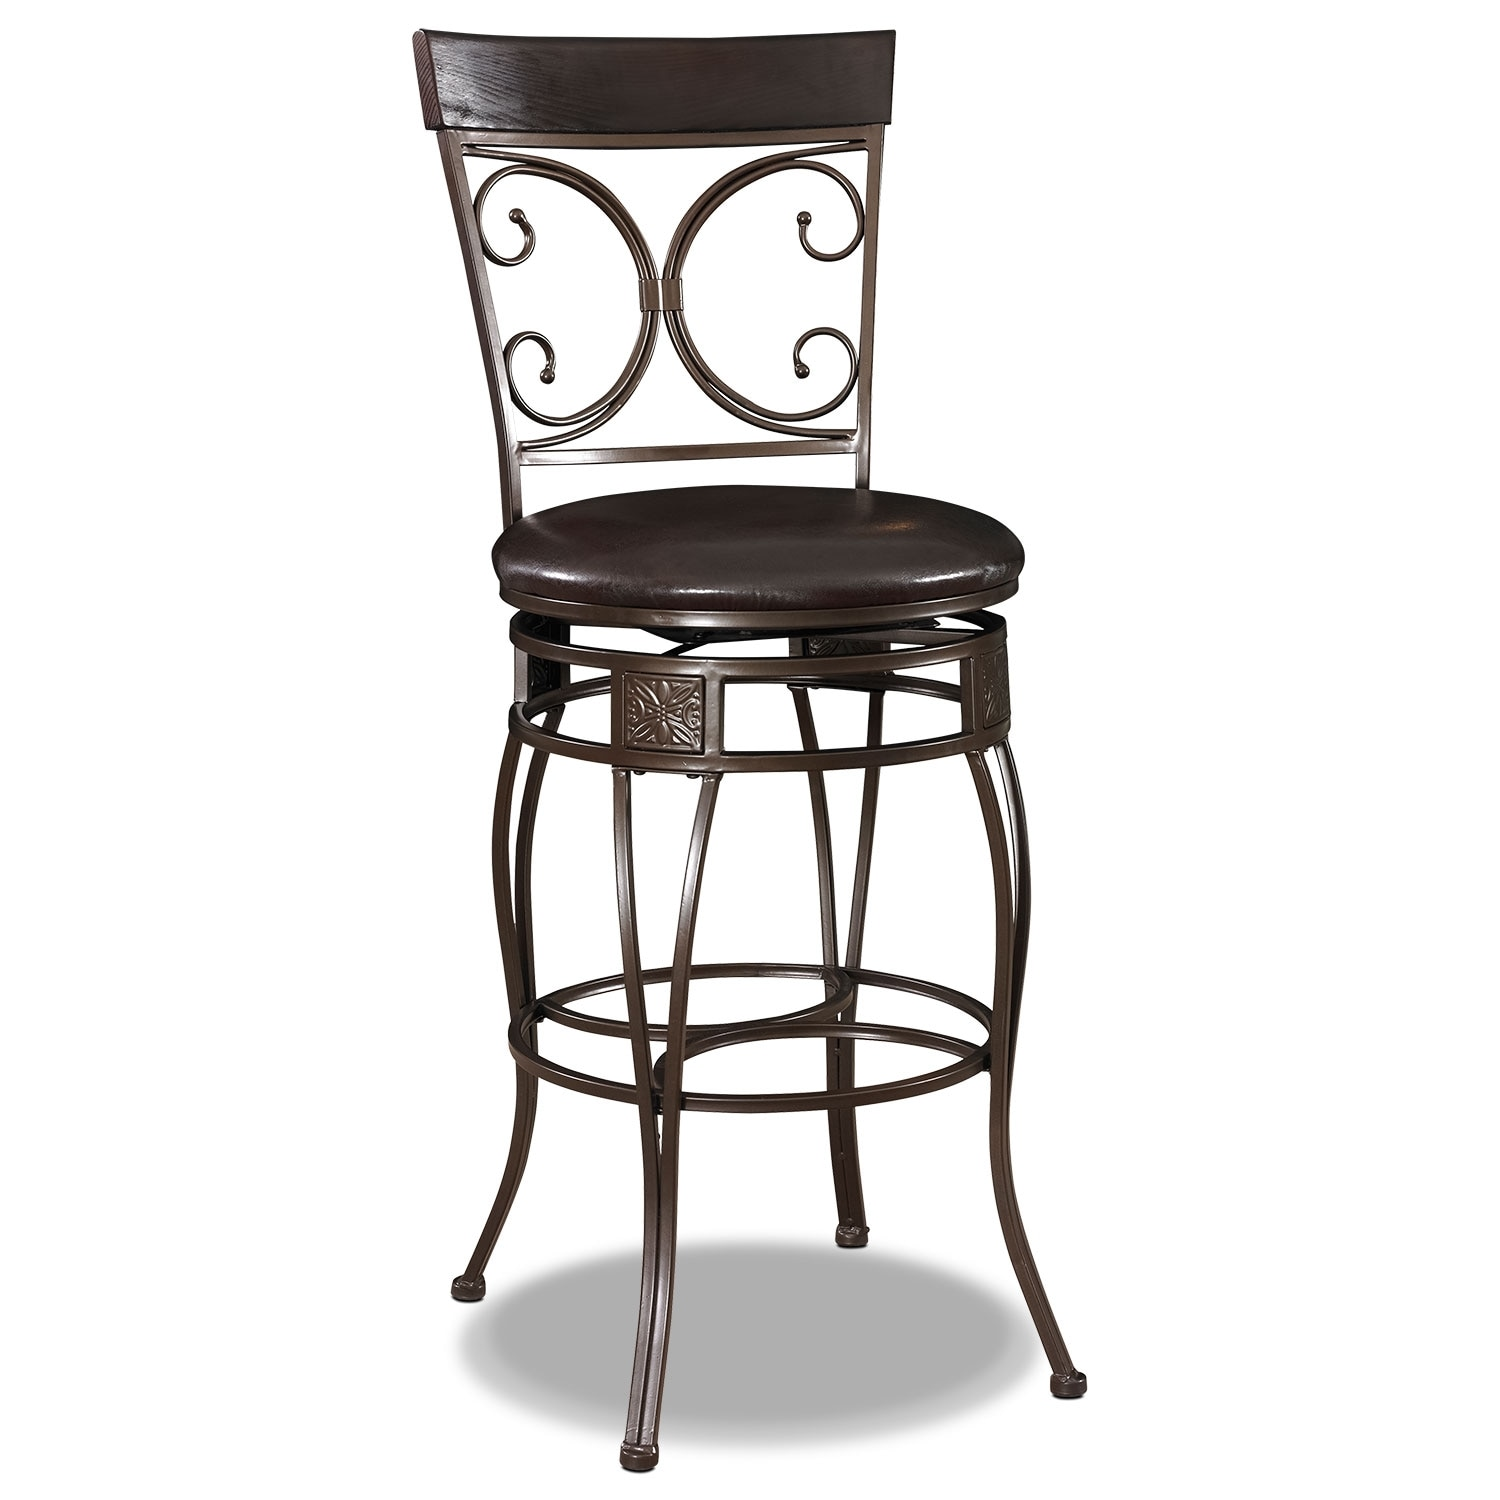 Accent and Occasional Furniture - Grandview Bar Stool - Black